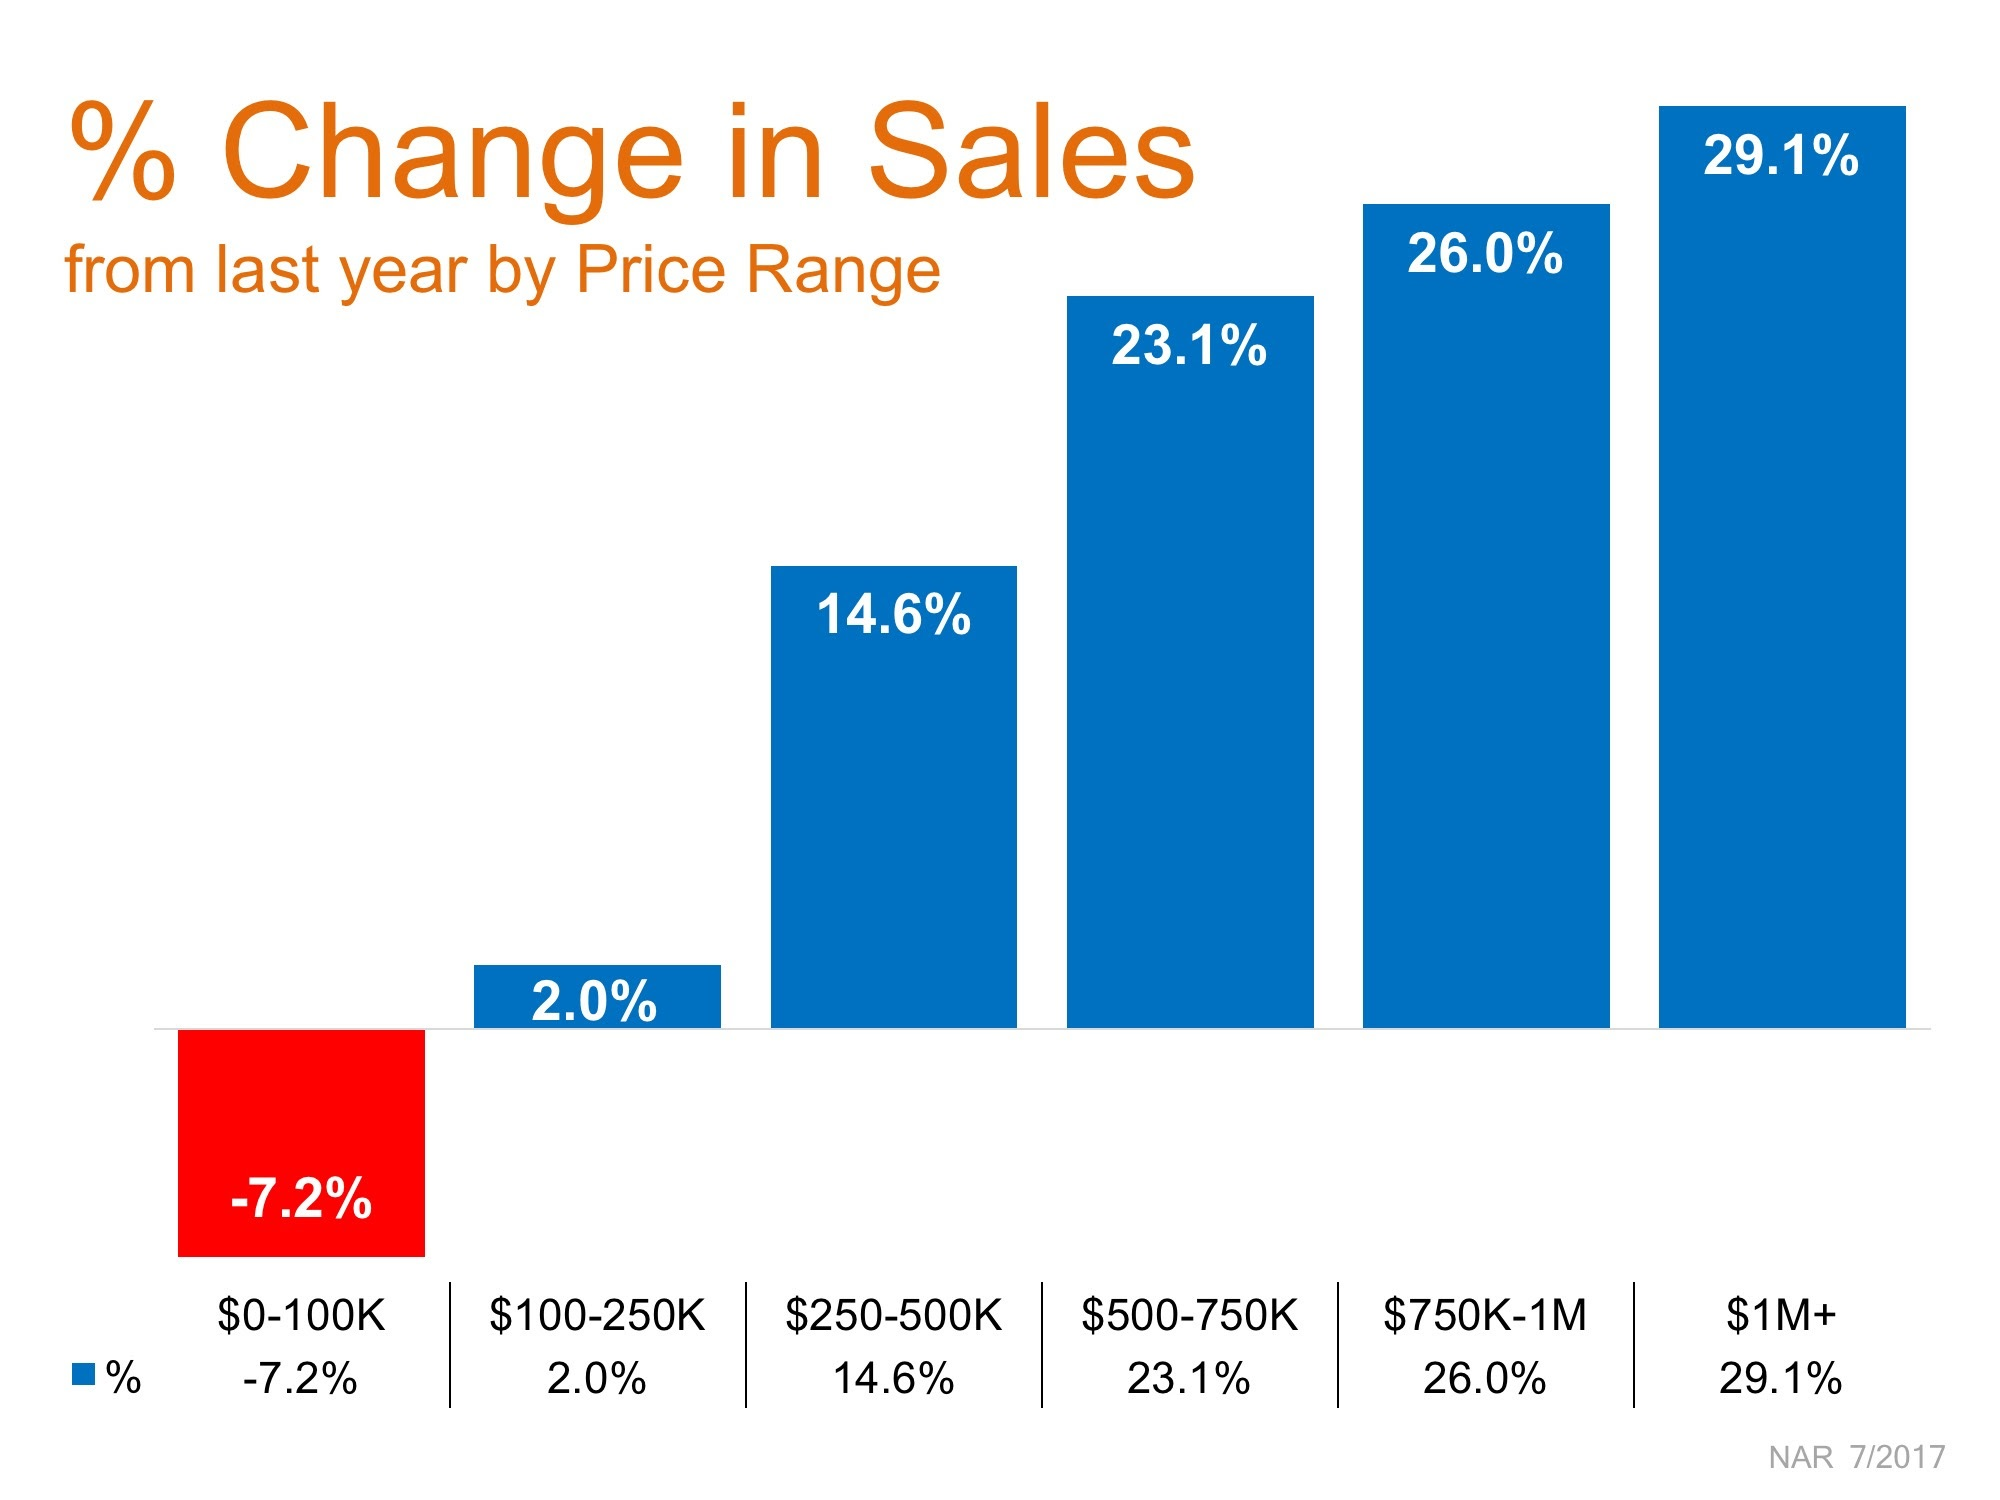 Percent Change in Sales